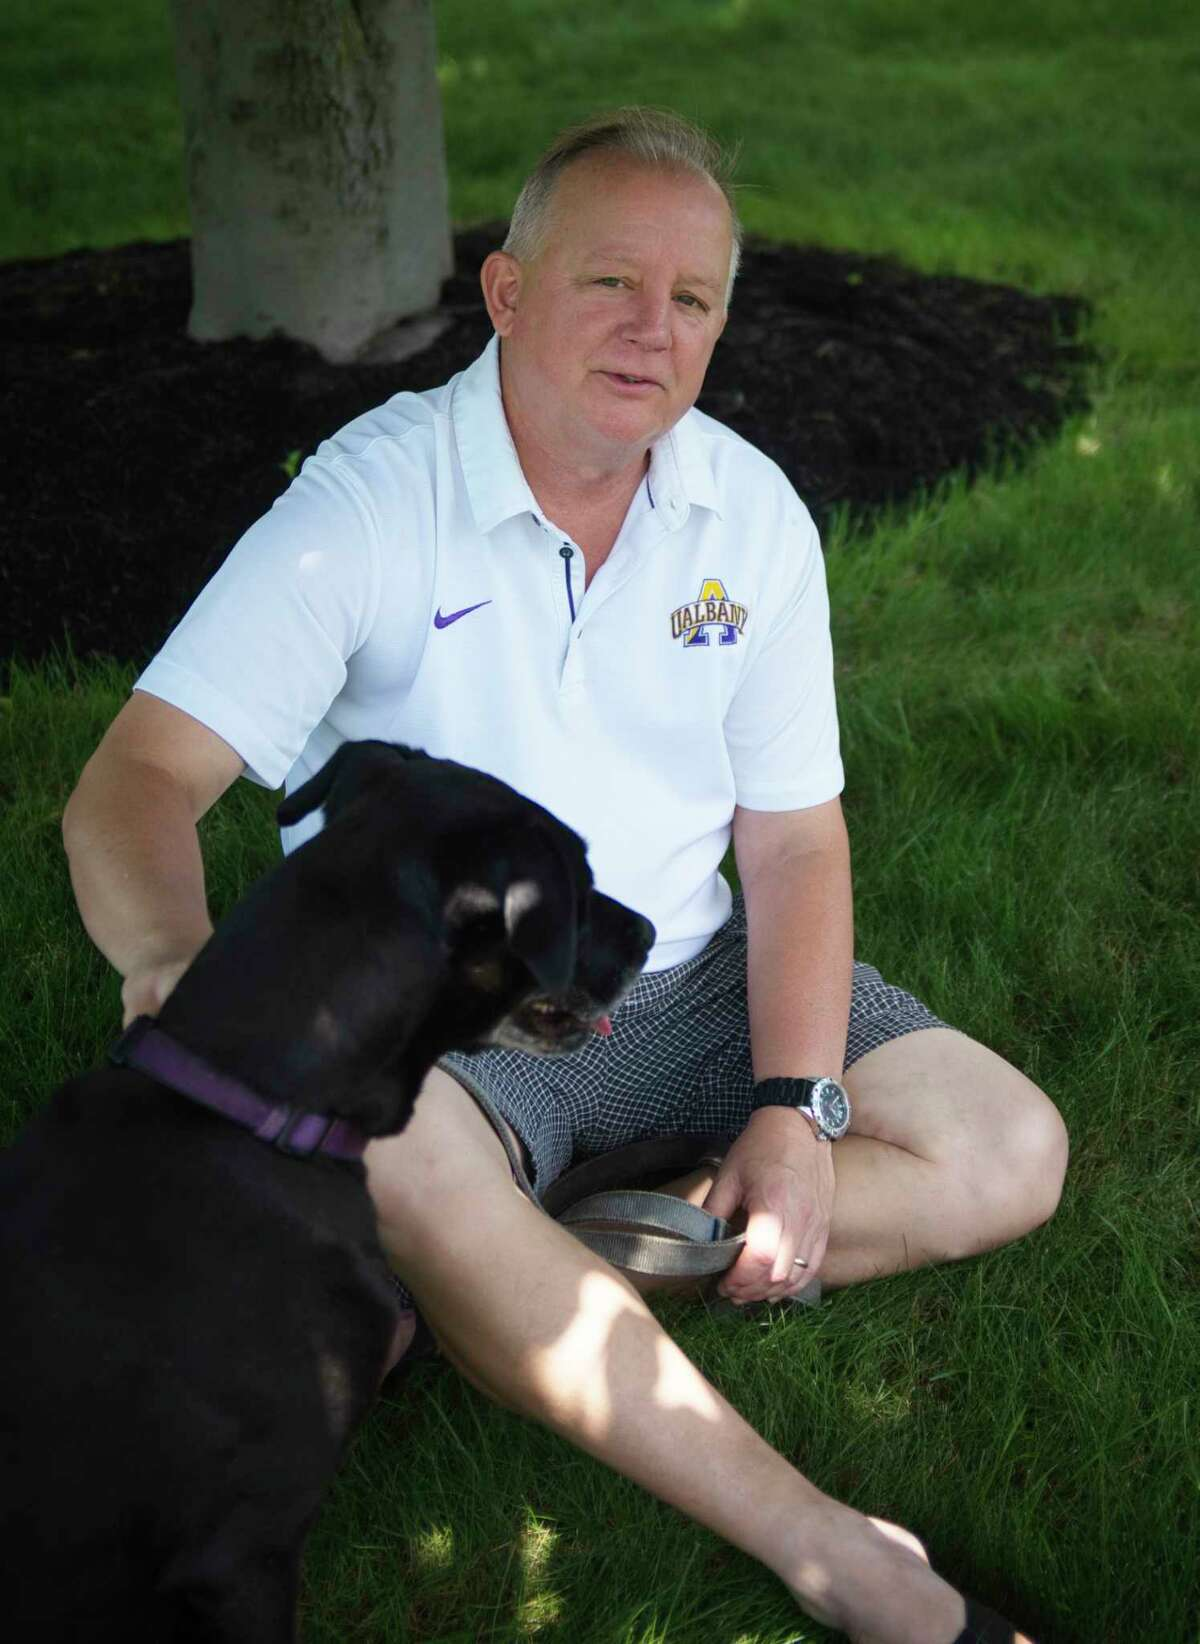 Times Union columnist and Writers Institute Director Paul Grondahl with his dog Lily on Tuesday, July 7, 2020, in Guilderland, N.Y. (Paul Buckowski/Times Union)